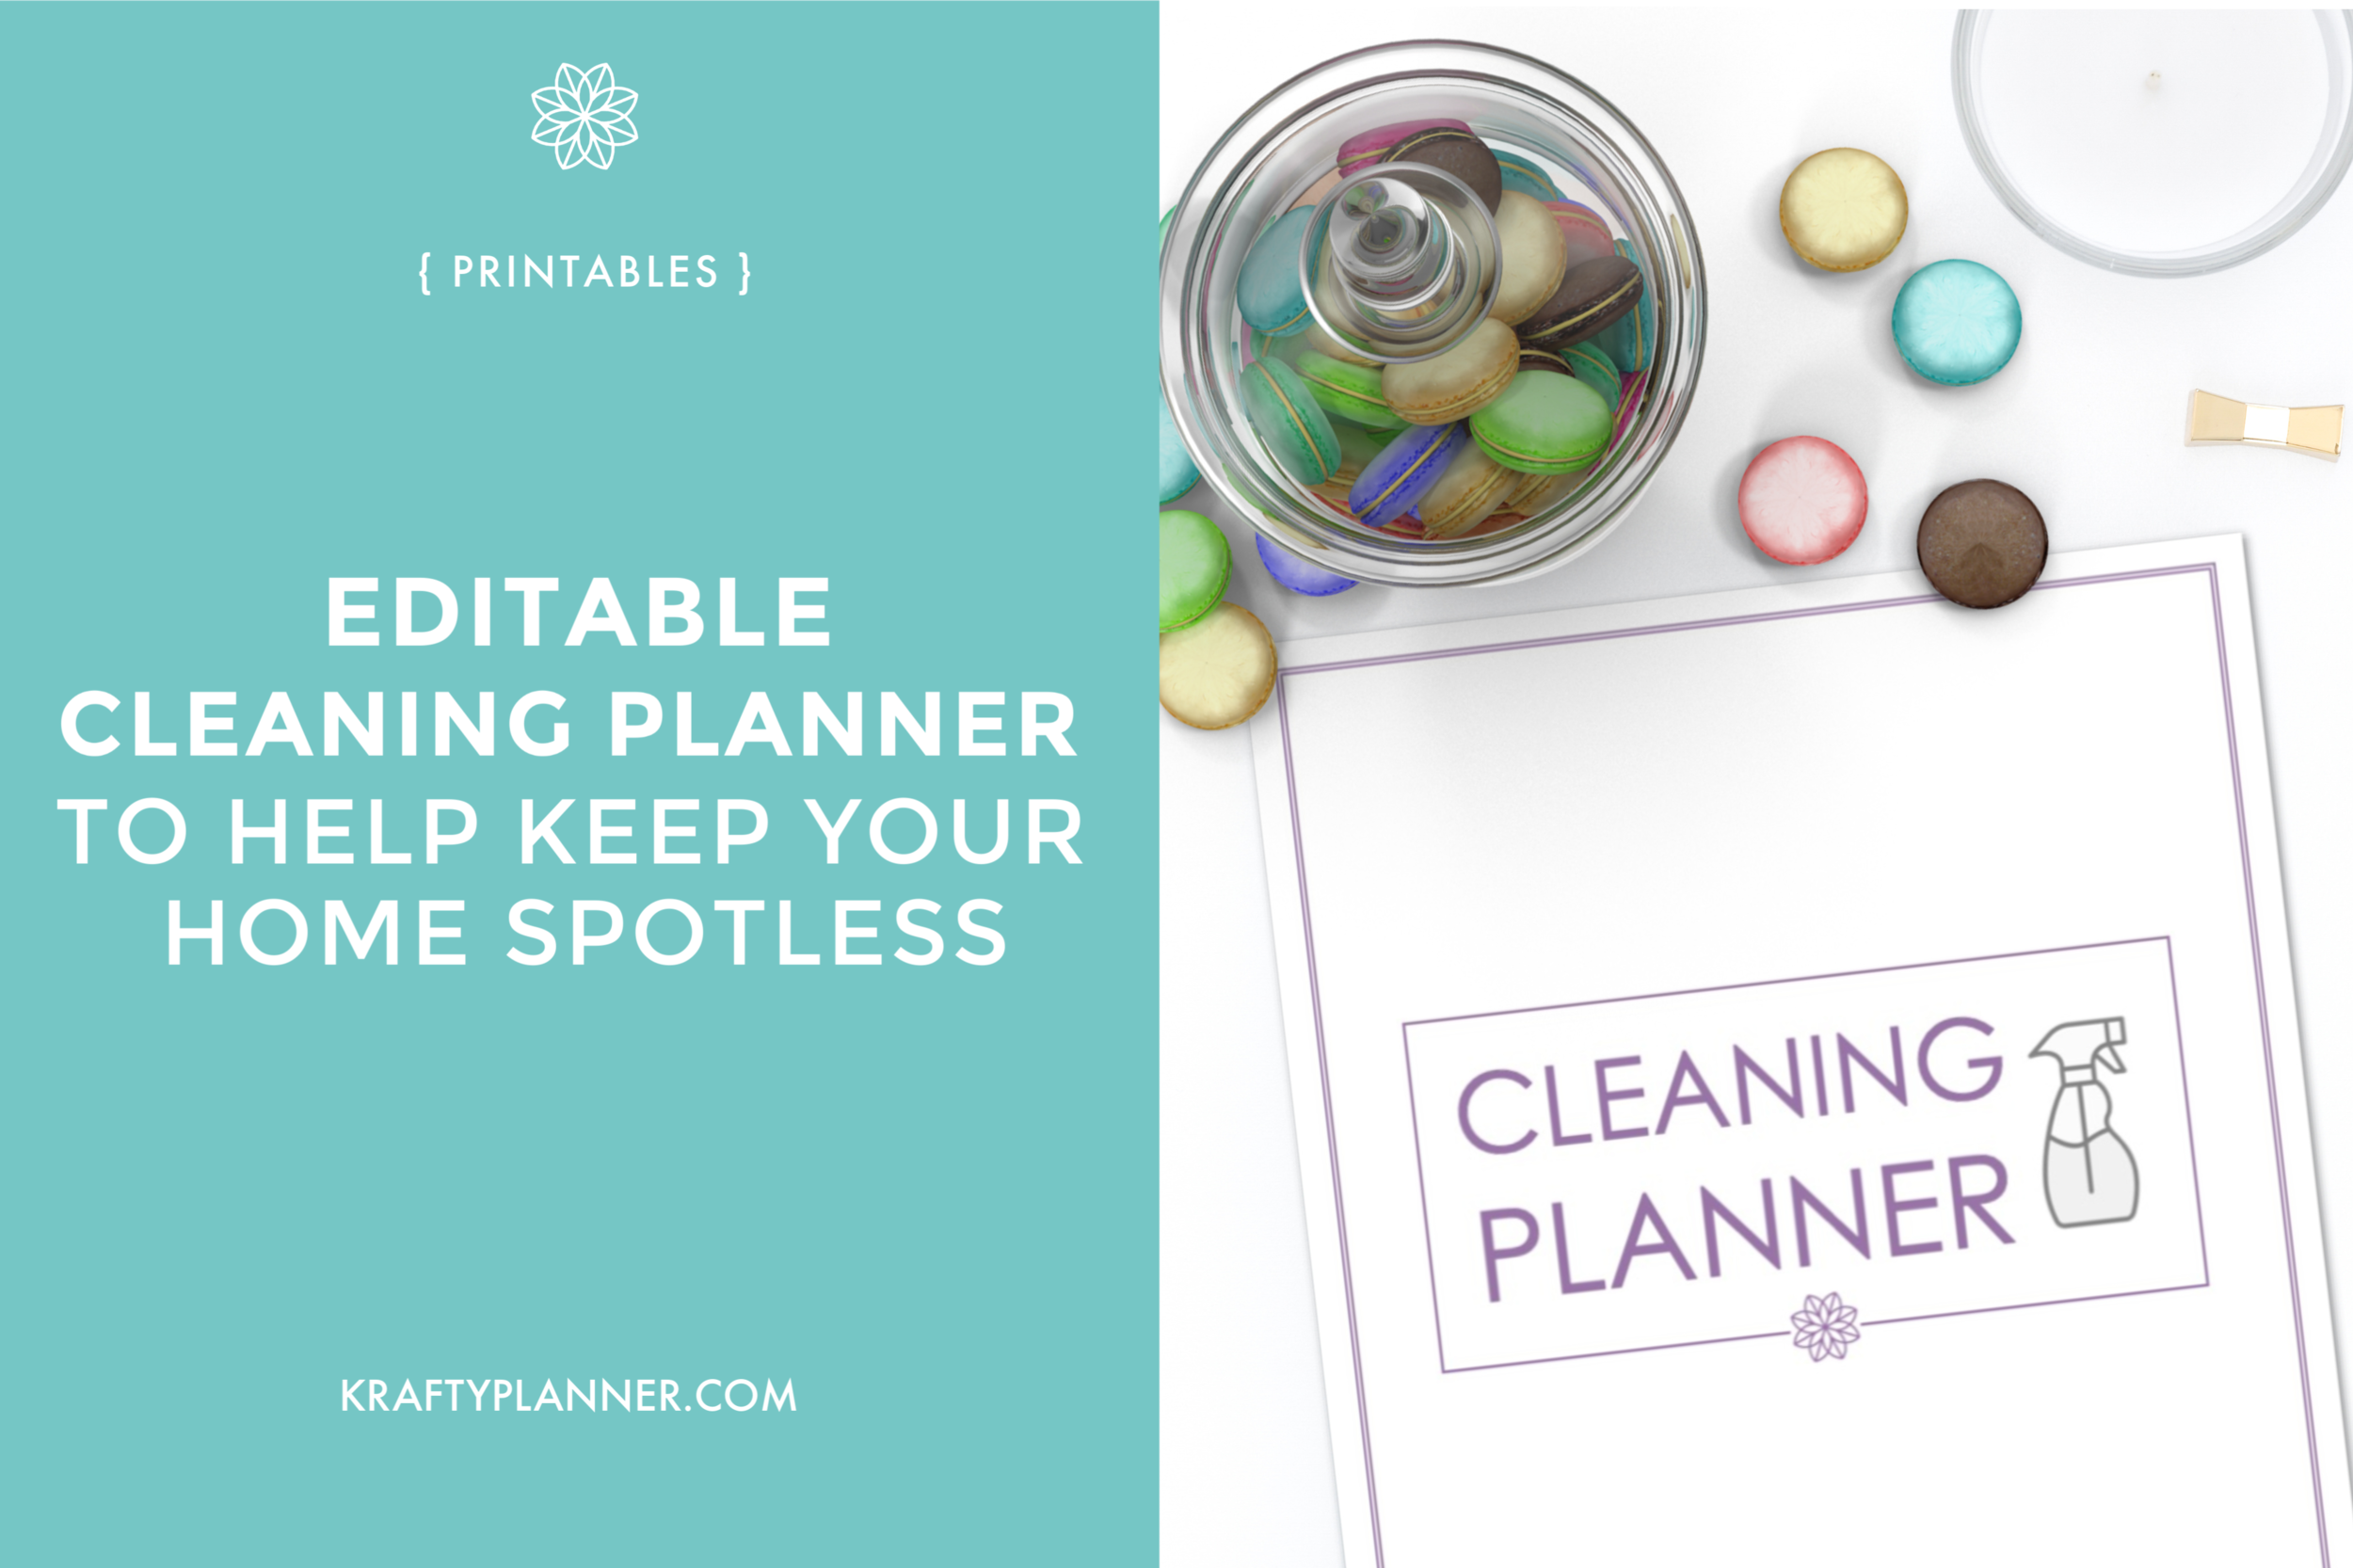 Editable Cleaning Planner to Help Keep Your Home Spotless Main Image.png